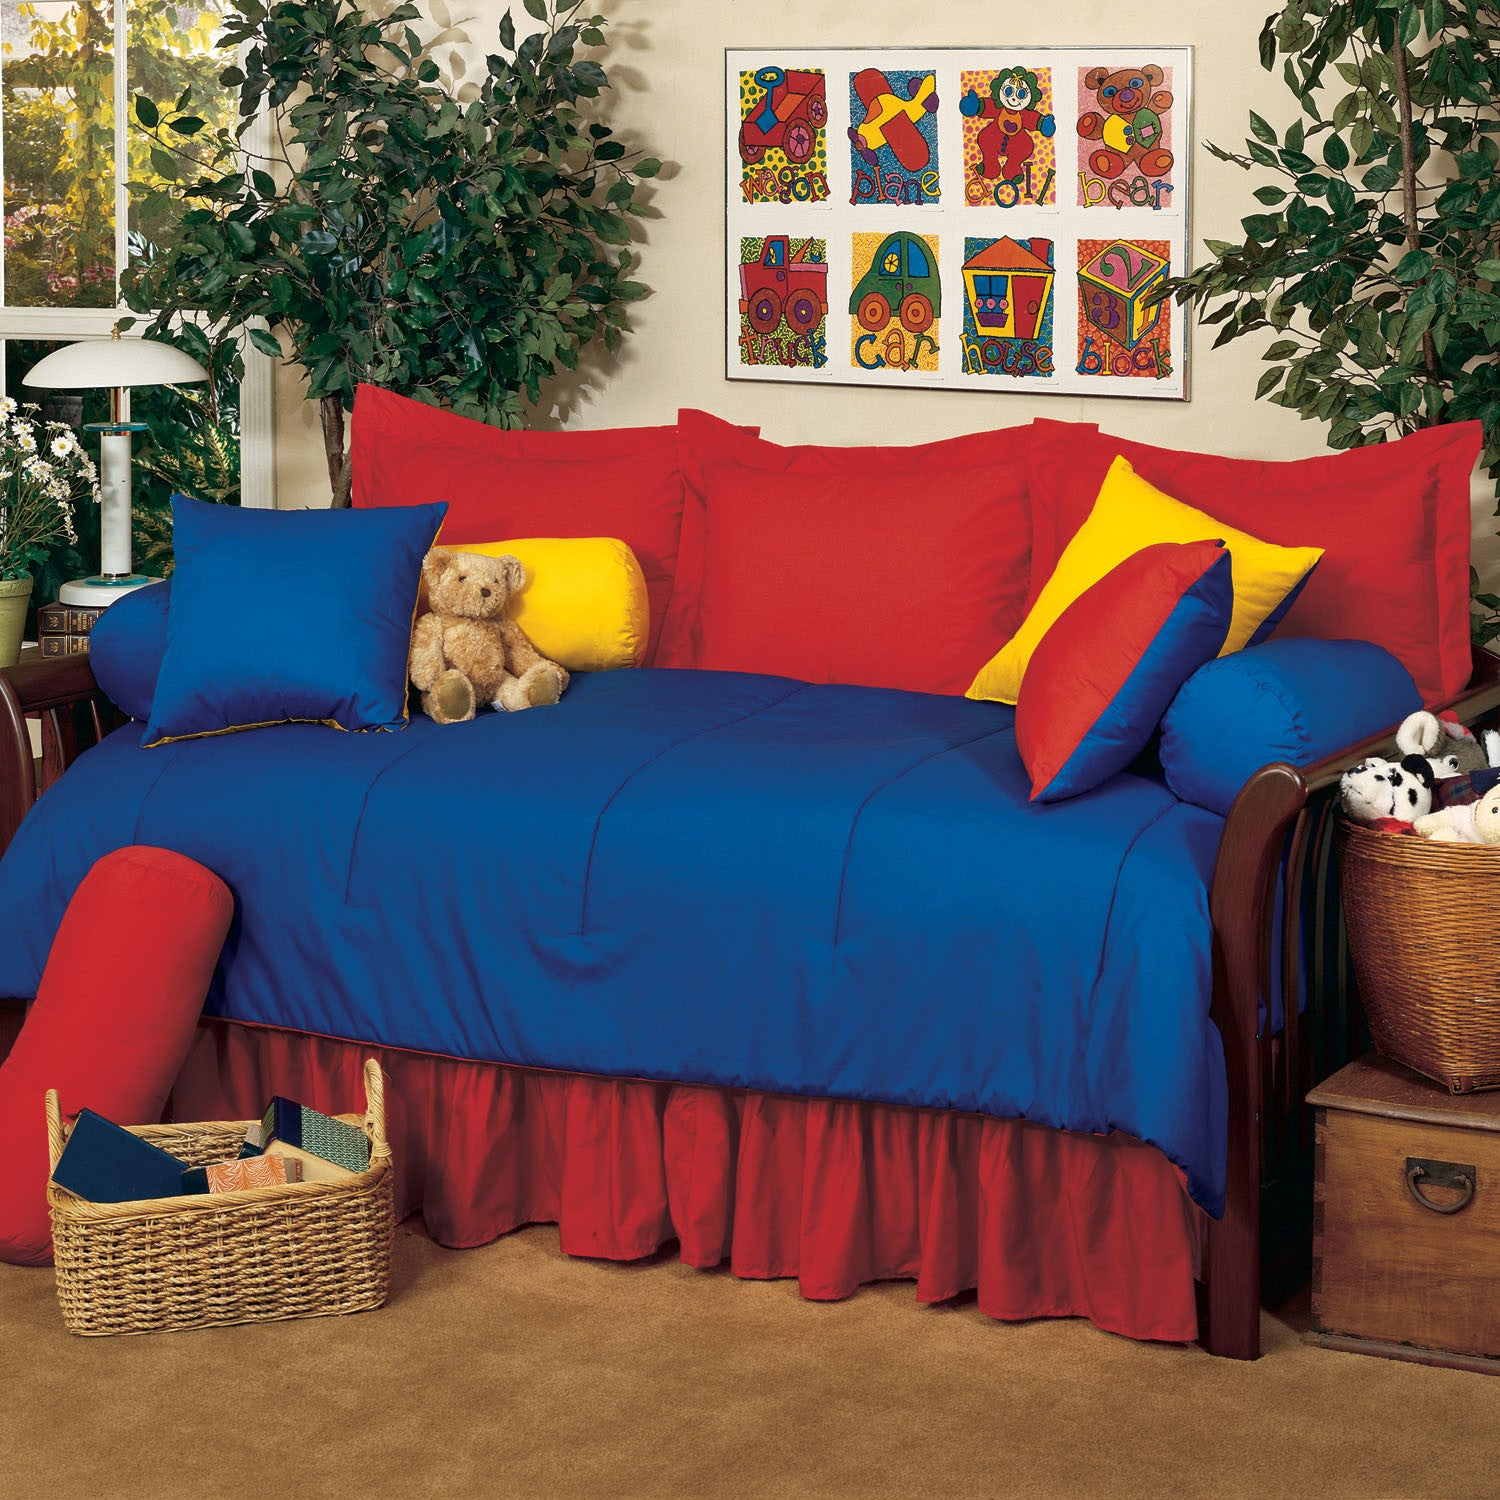 Yellow Daybed Set - Back40Trading2